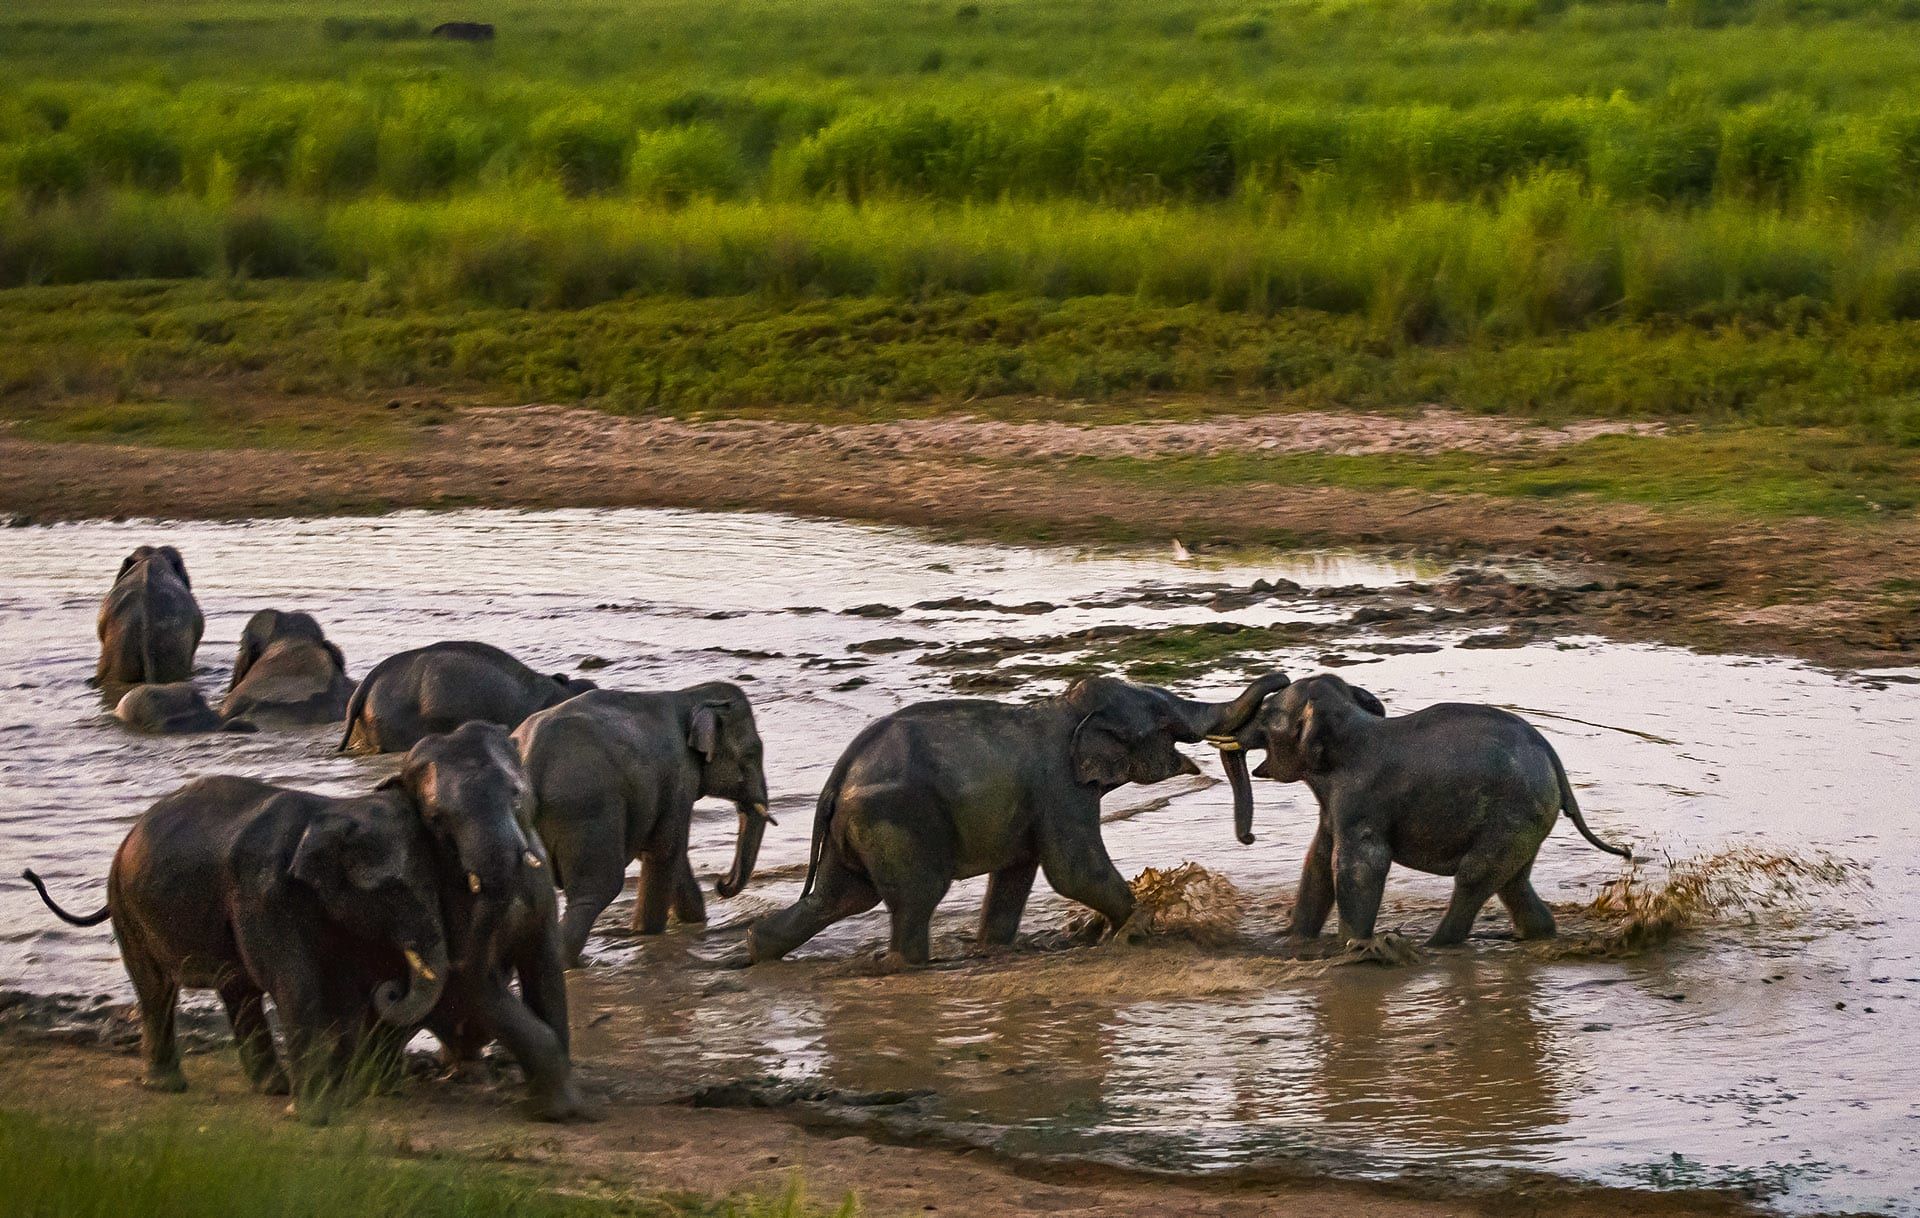 """One of the ways in which dominance is exhibited is through play. """"When they engage in this play, they learn each other's strengths and weakness,"""" says Lakshminarayanan. """"This is how ranks are set within a herd, and between herds when they meet. One bull knows that the other is more physically powerful, so he knows to back down if threatened."""""""